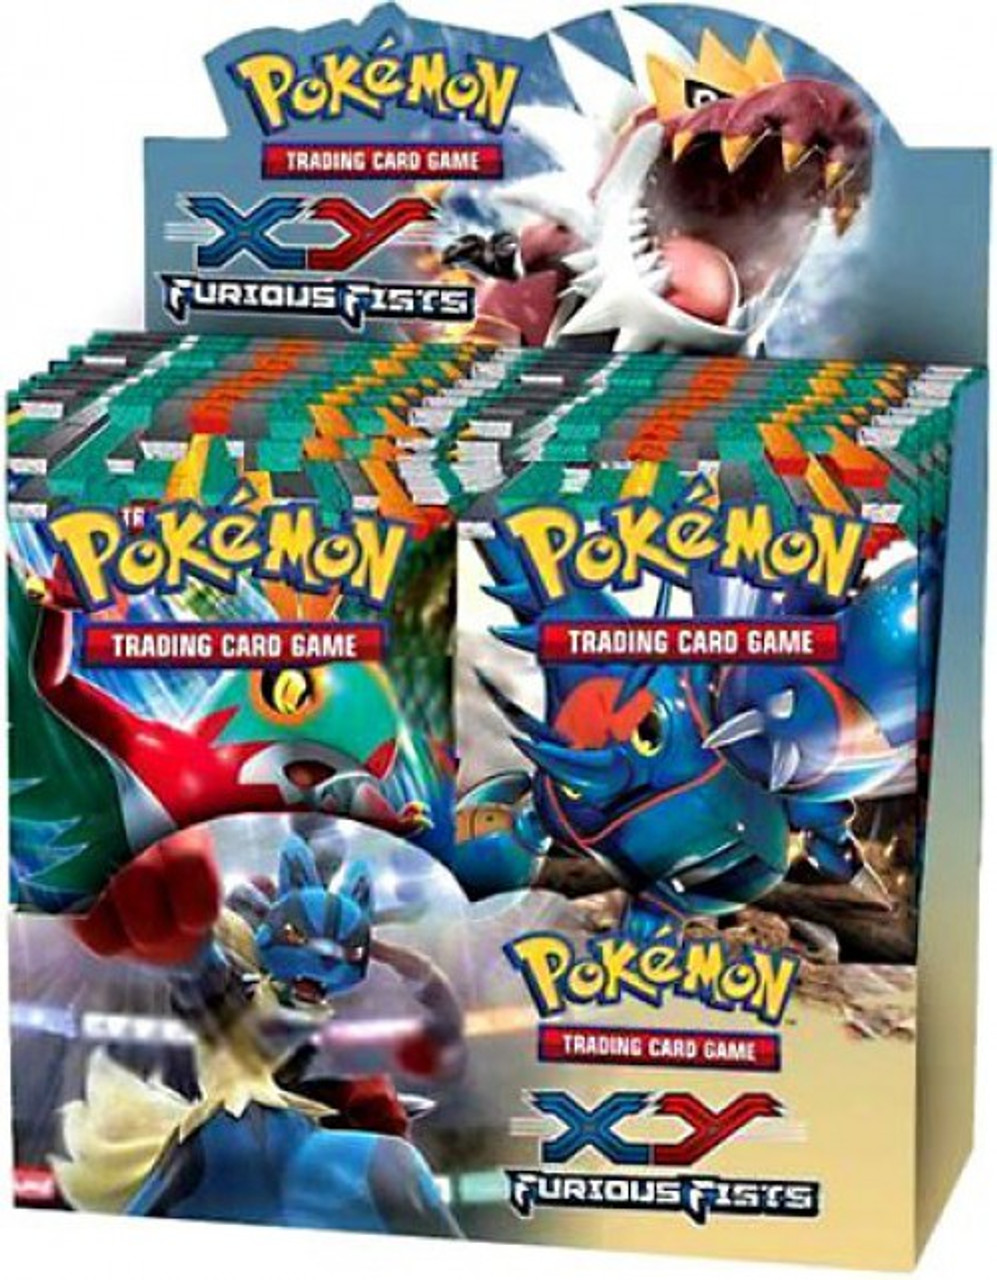 ELEVEN Pokemon Furious Fists Online Code Cards email within 24 hours